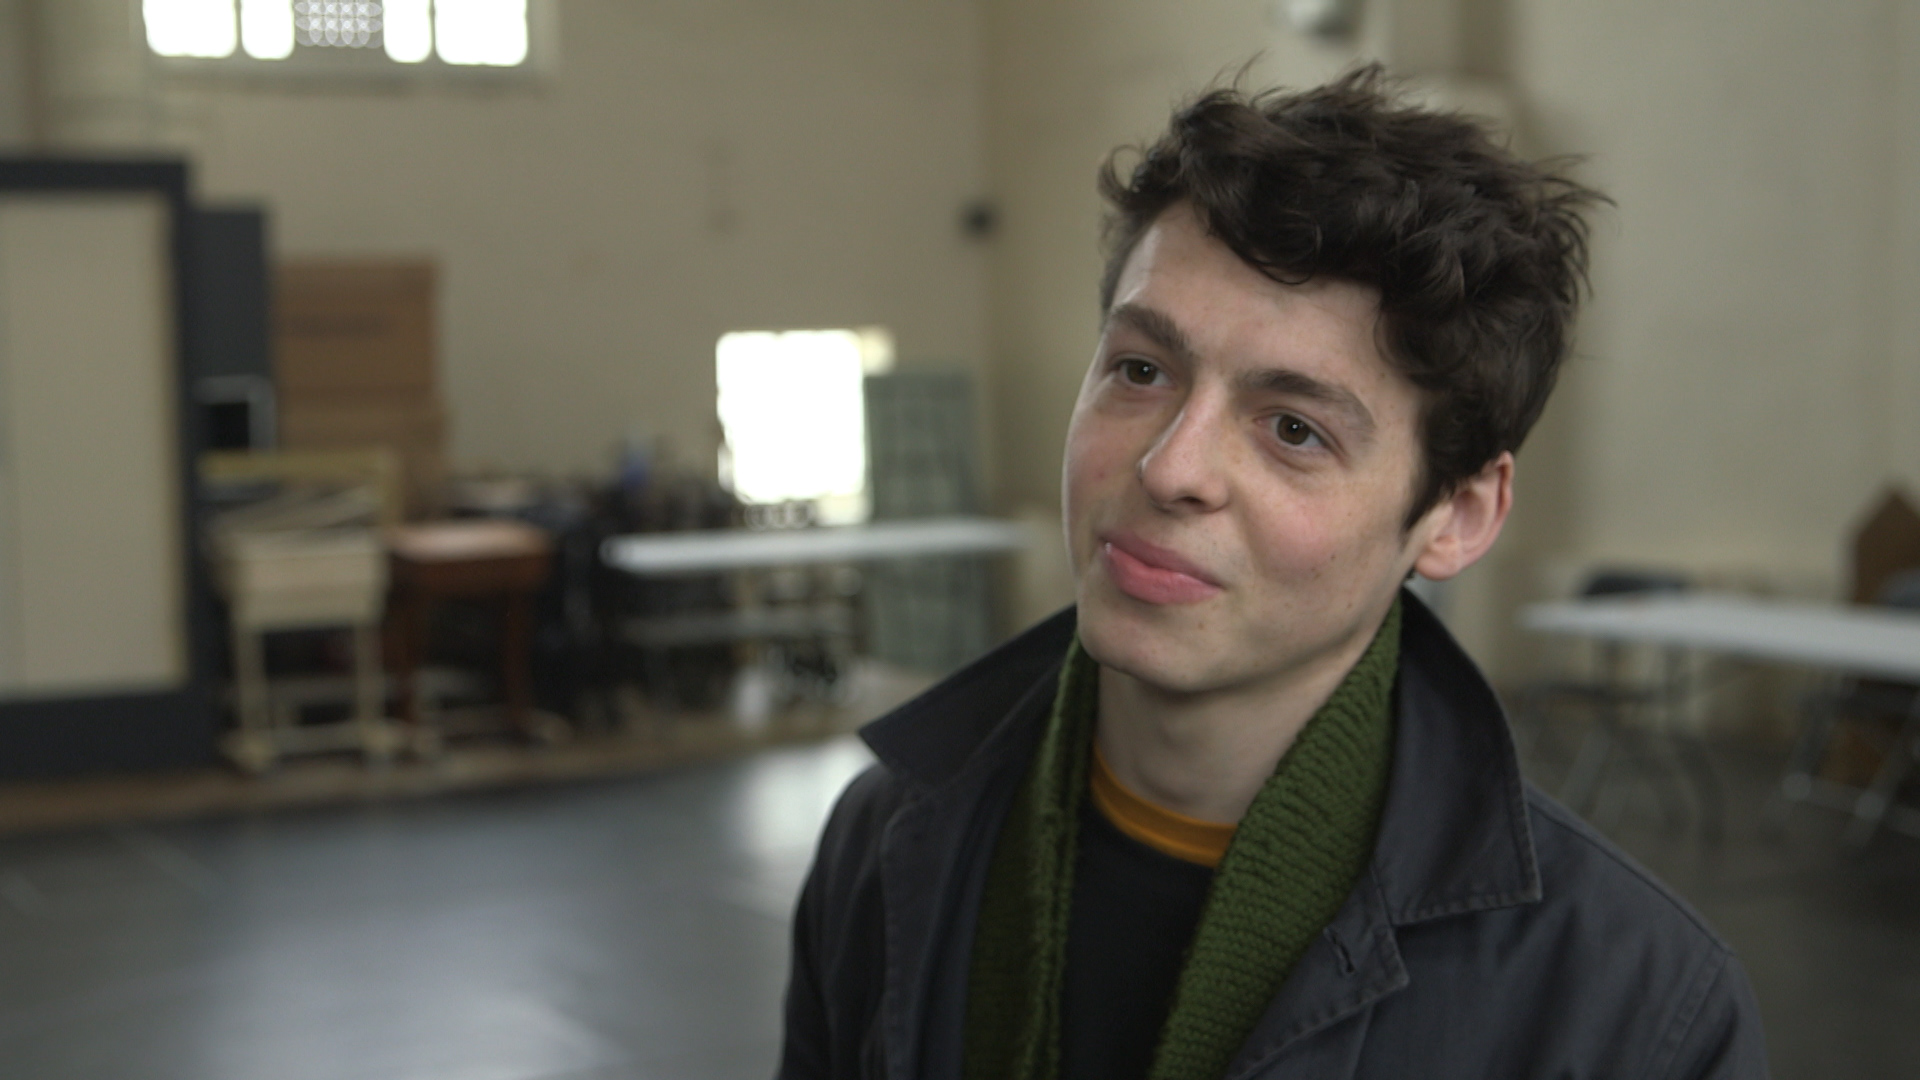 Pottermore - Anthony Boyle talks about playing Scorpius Malfoy in ...